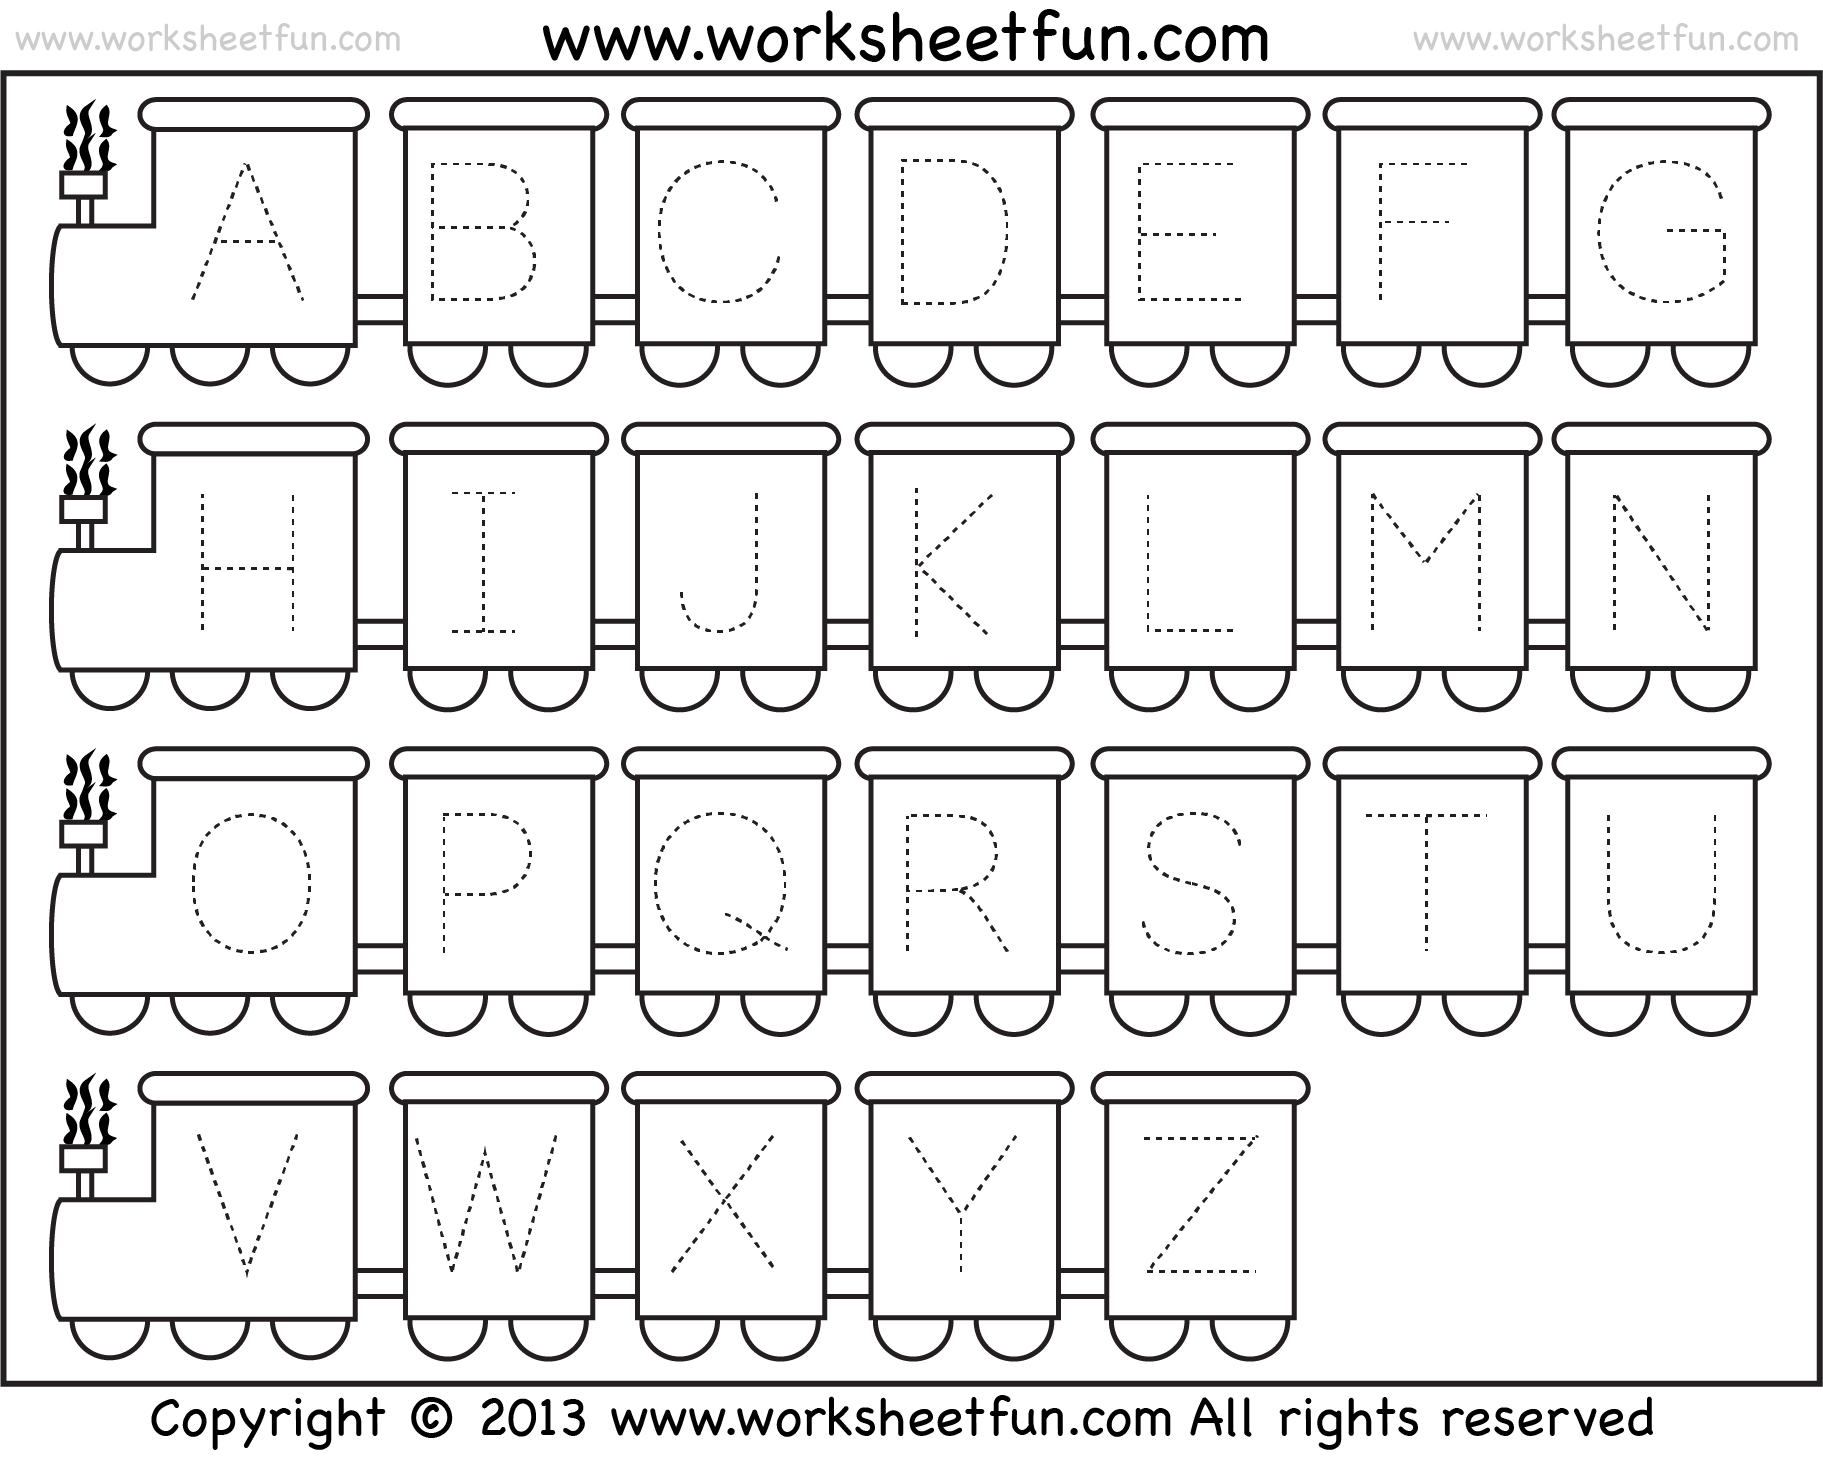 Printables Free Alphabet Tracing Worksheets letter tracing worksheet train theme free printable worksheets worksheet